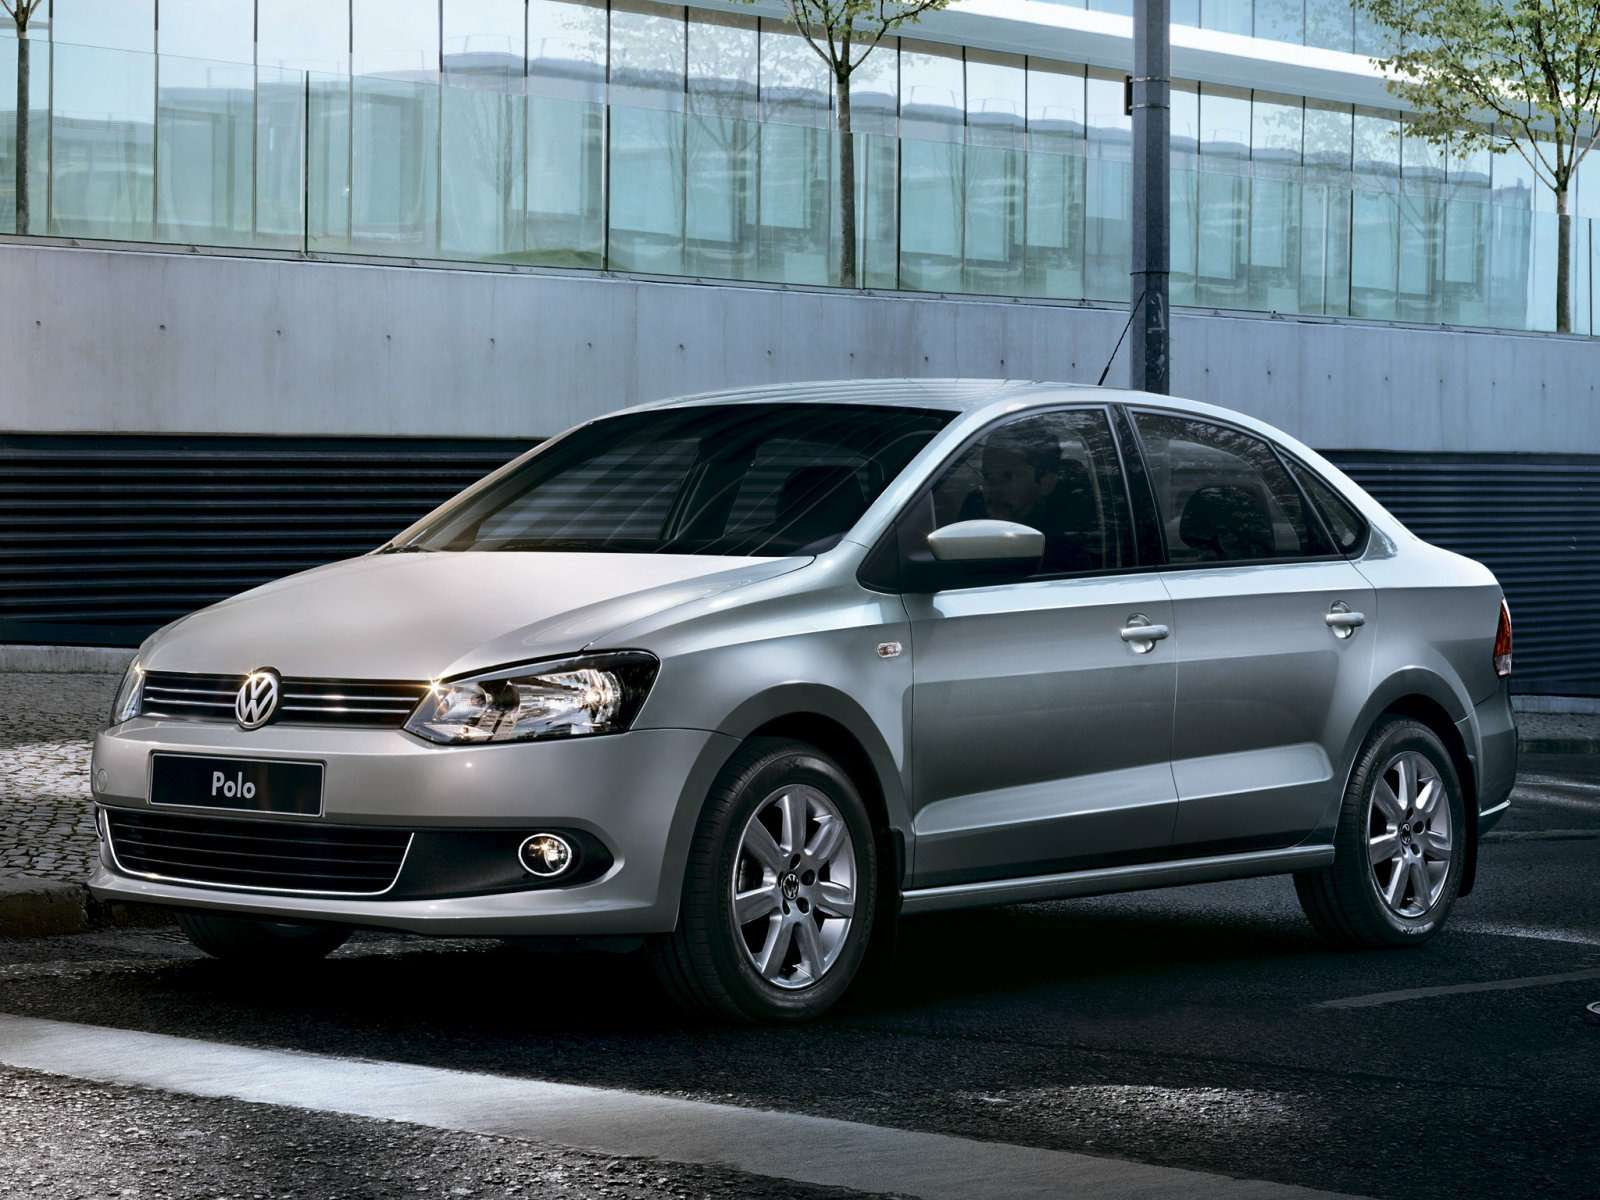 Volkswagen_Polo_Sedan_2010